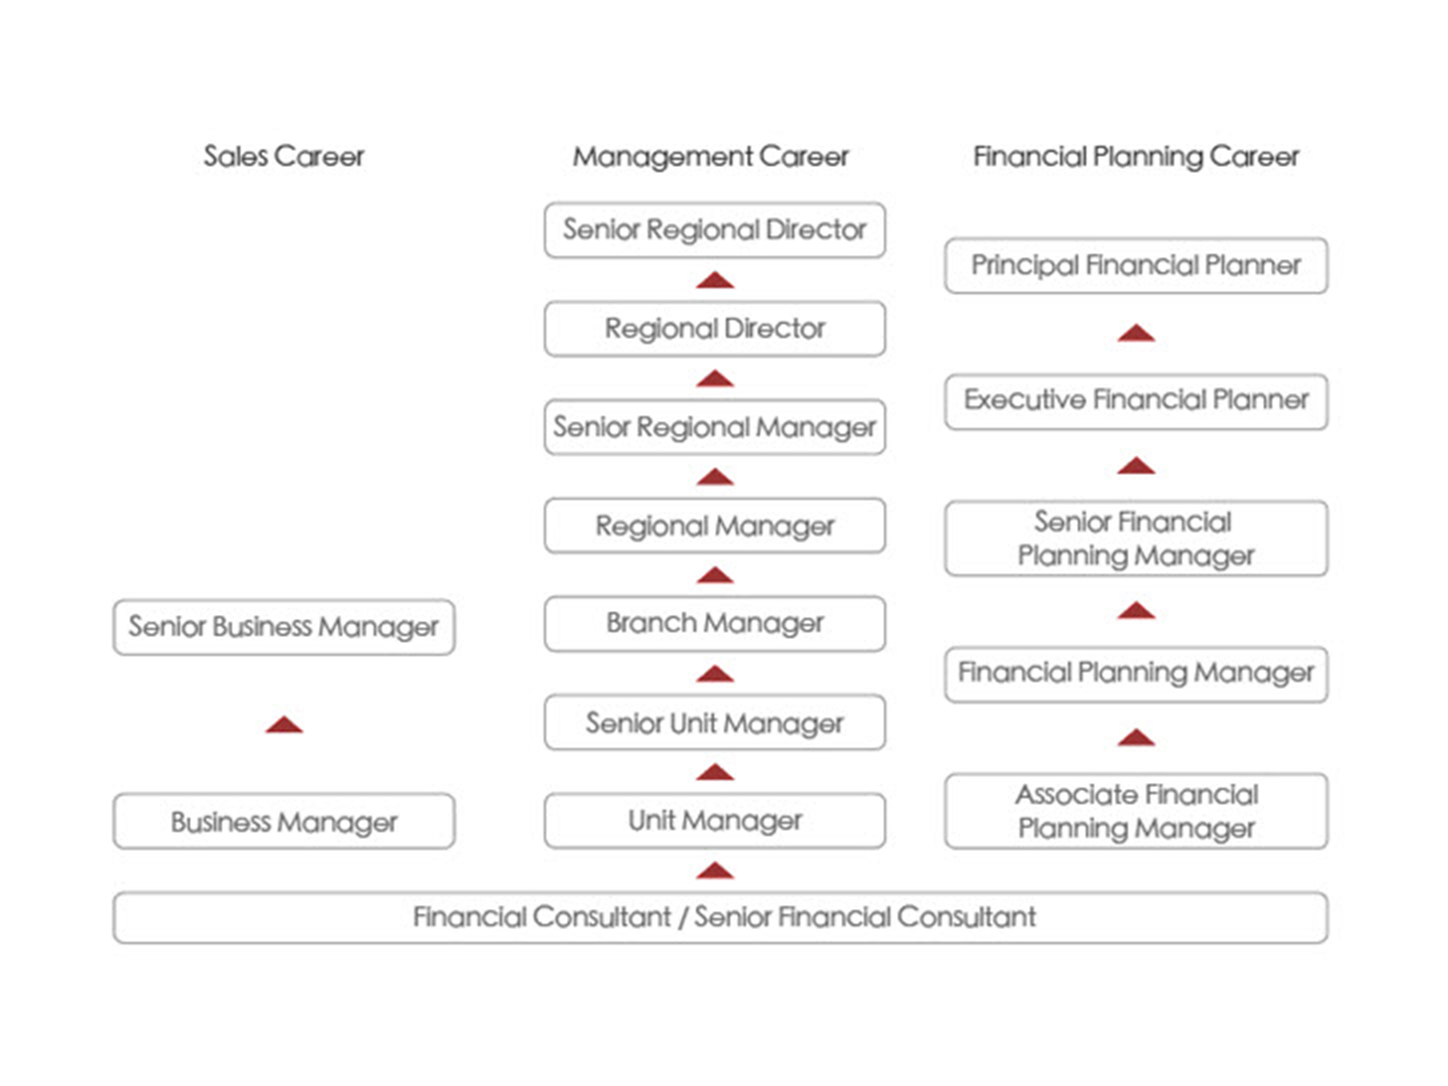 Career path of a Prudential financial consultant